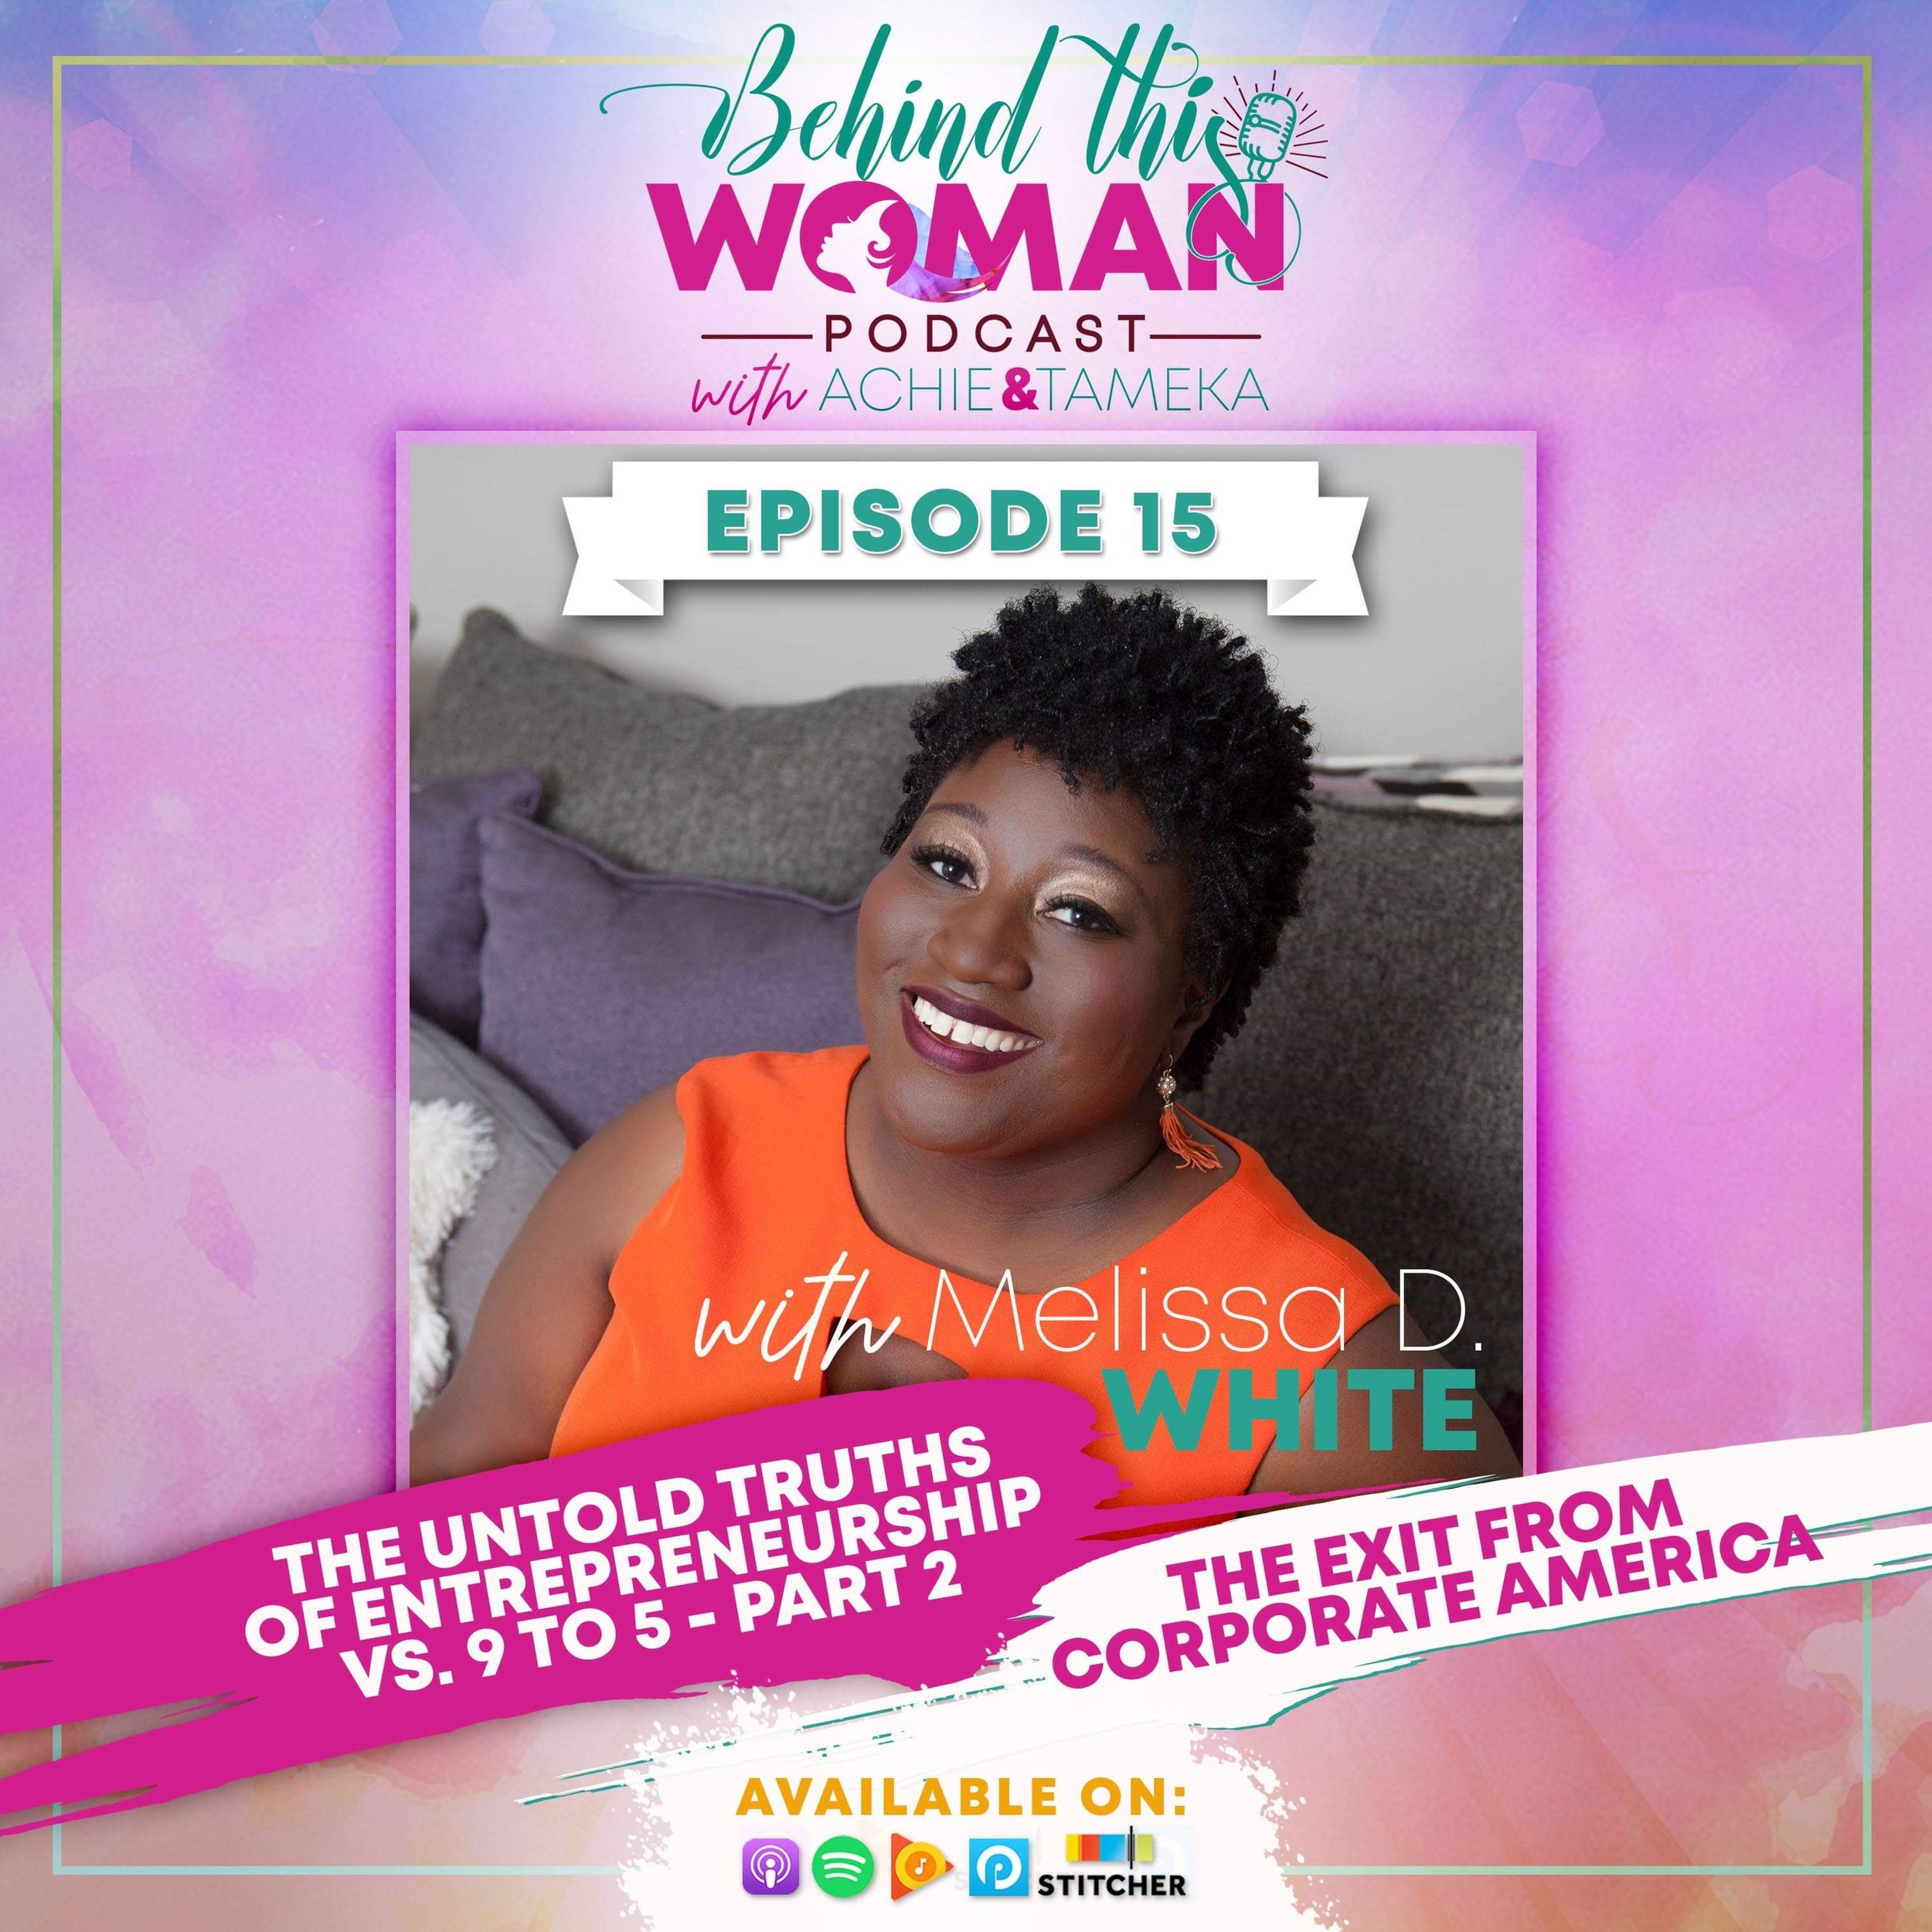 - In this episode, Achie and Tameka interview Melissa D. White on her transition from employment to entrepreneurship. She shares how she plotted her exit from Corporate America as a Marketing and Advertising Executive by developing a clear vision, maximizing her resources, and establishing herself in the market. Delving into her best and worst days, she explains how she manages the different seasons of entrepreneurship.Visit her website: www.TheActivationHour.comCheck out her non-profit: www.WritingOurWrongs.orgFollow her on IG: @melissadwhite Listen to her Podcast: The Activation Hour Podcast with Melissa D. White on iTunes and GooglePlay